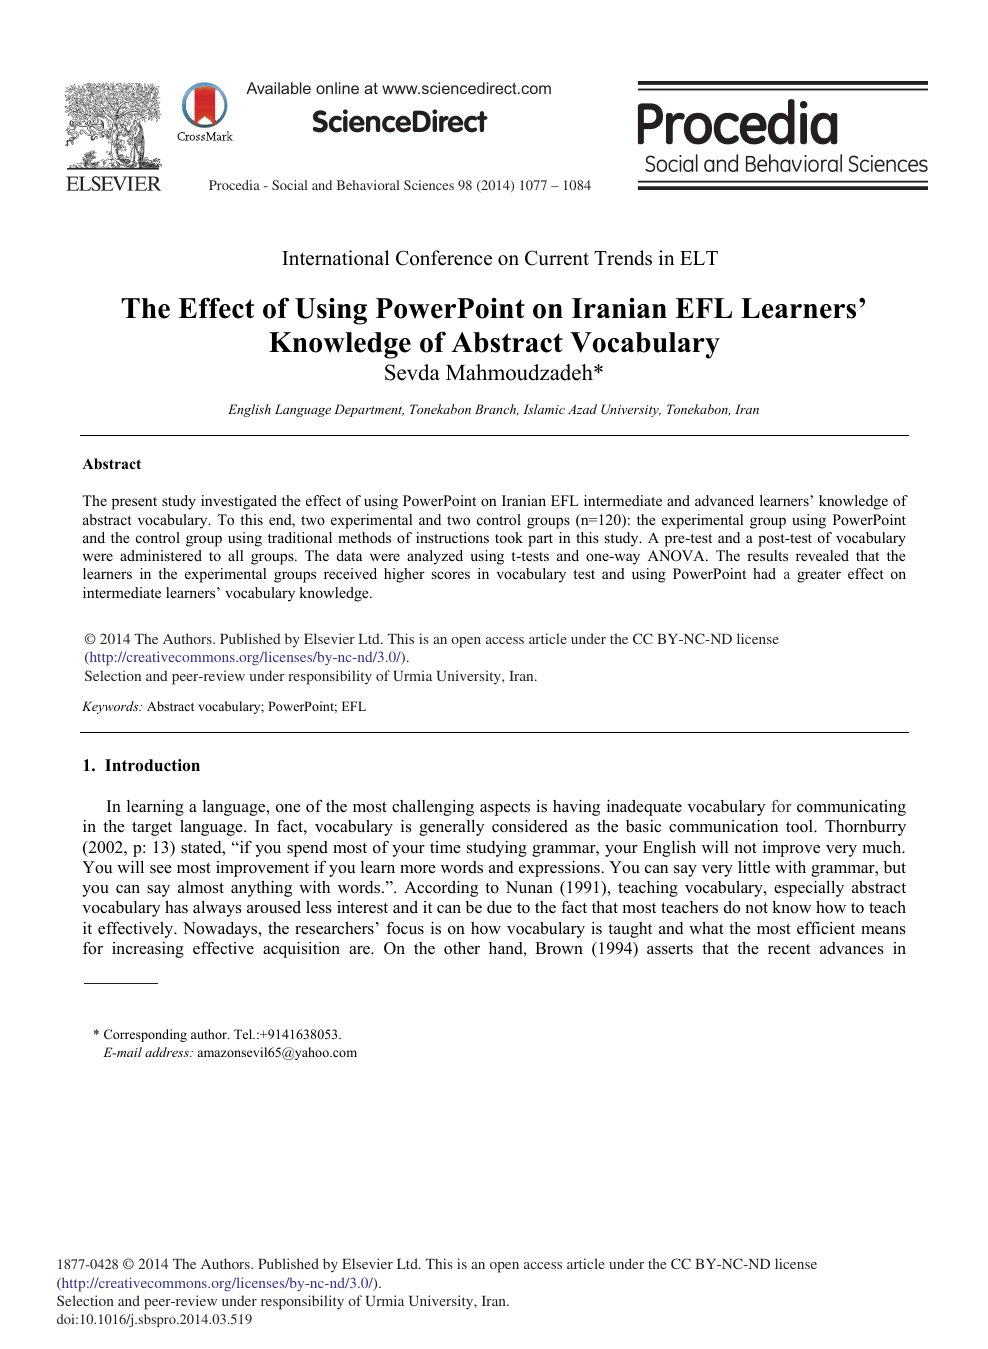 004 Research Paper How To Read Papers Fascinating Ppt Full